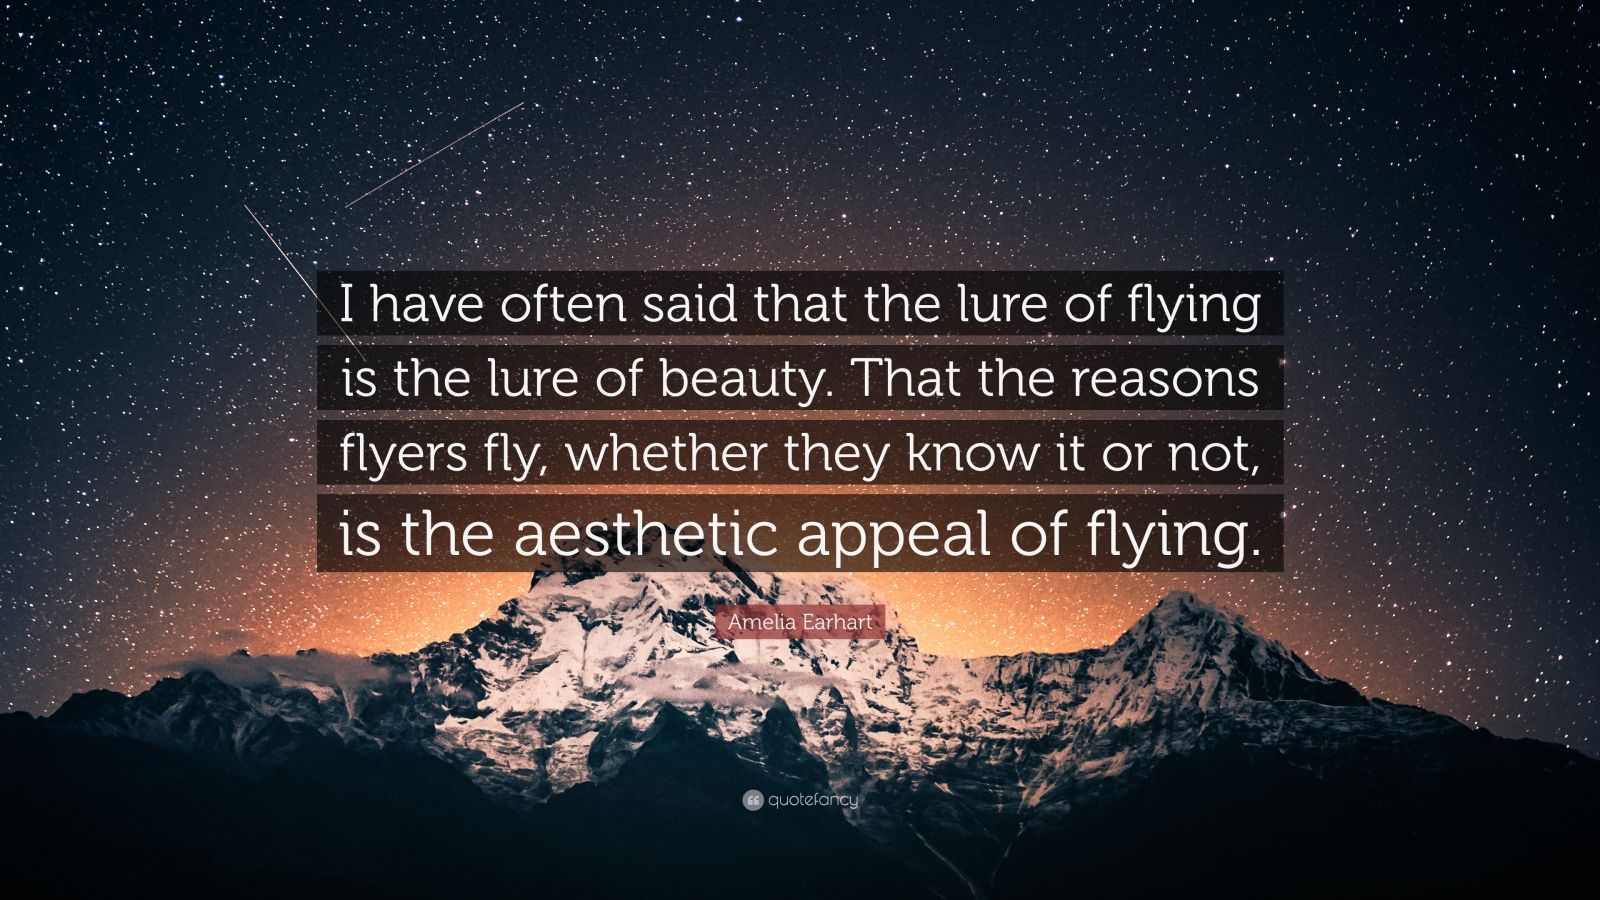 """Amelia Earhart Quote: """"I have often said that the lure of flying is the lure of beauty. That the reasons flyers fly, whether they know it or not, is the aesthetic appeal of flying."""""""